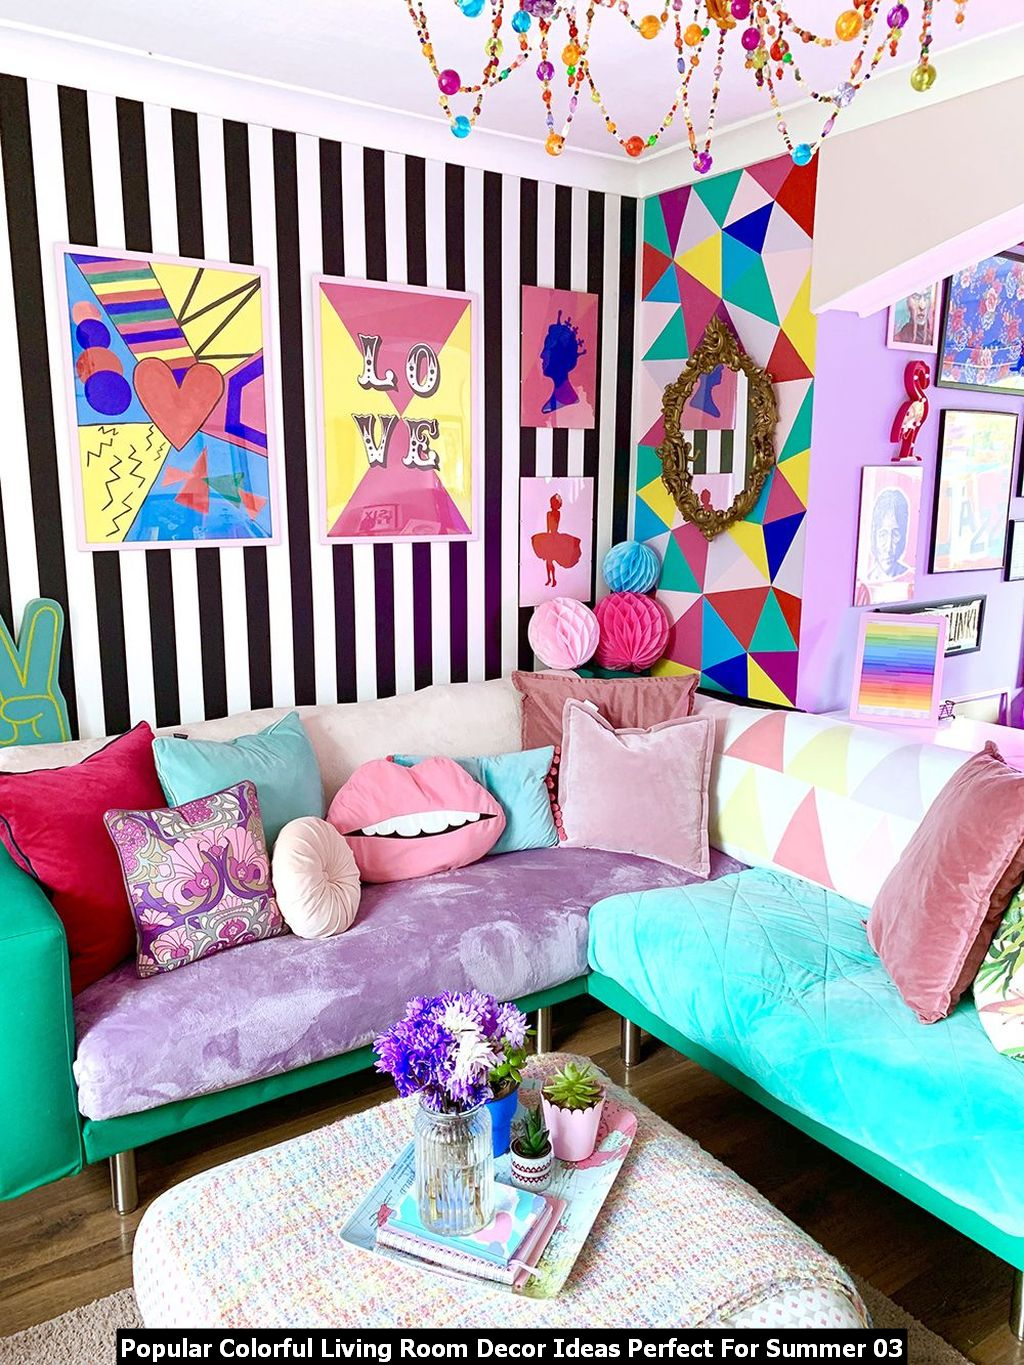 Popular Colorful Living Room Decor Ideas Perfect For Summer 03